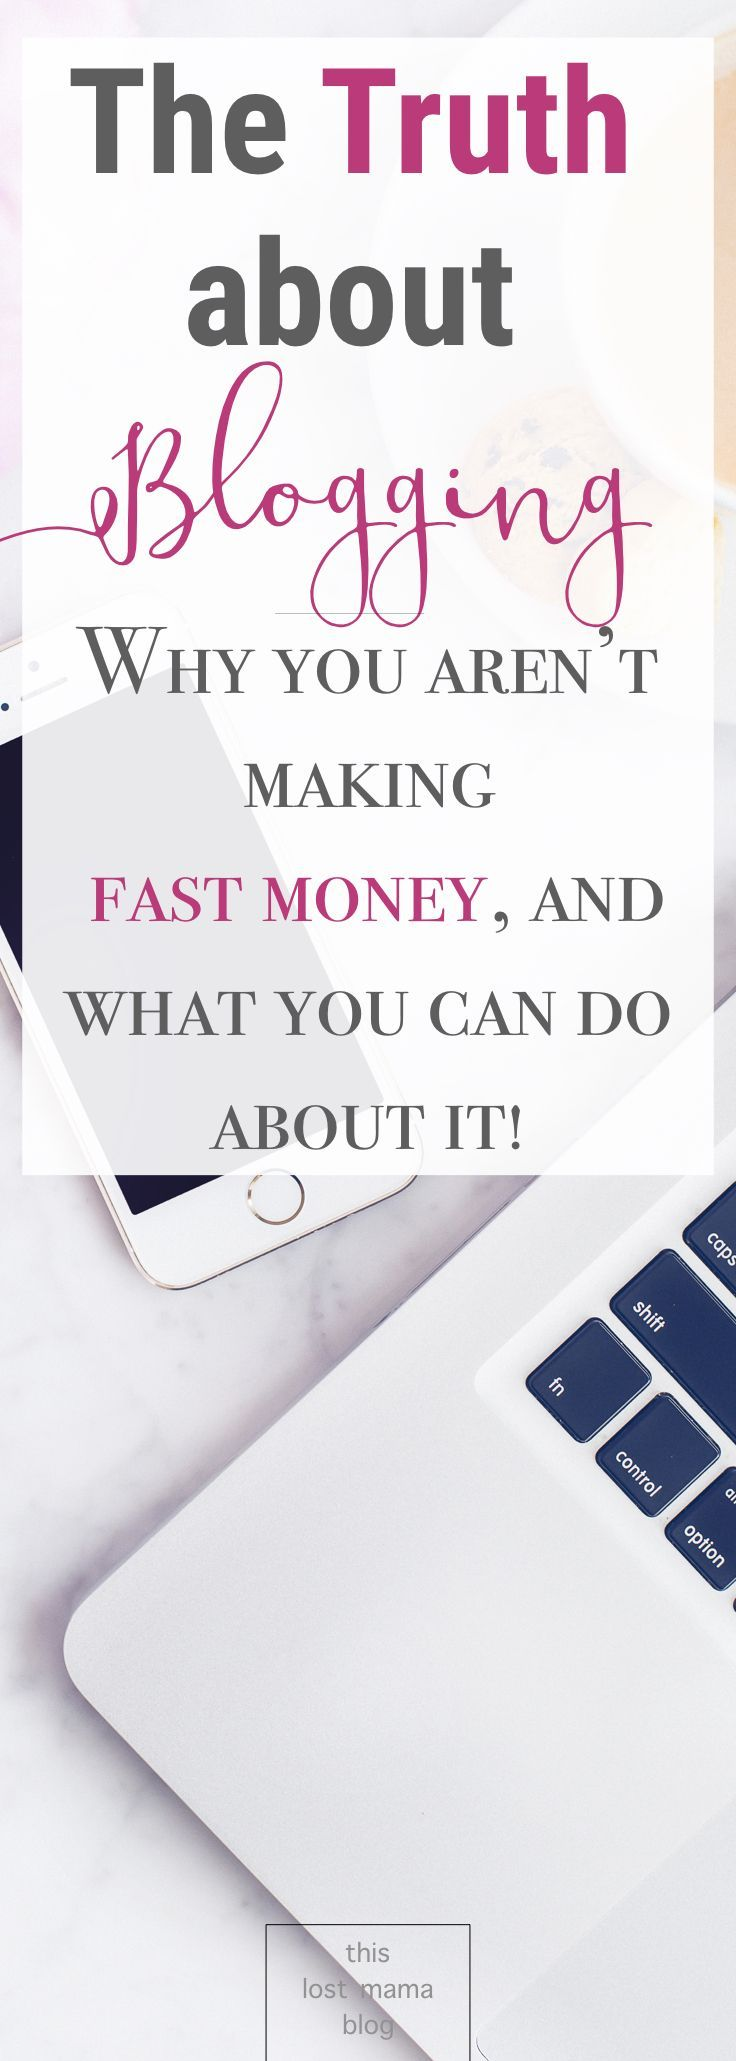 What happened my first month blogging isn't as you'd expect! Find out why you aren't making as much as you should and how you should keep at it!